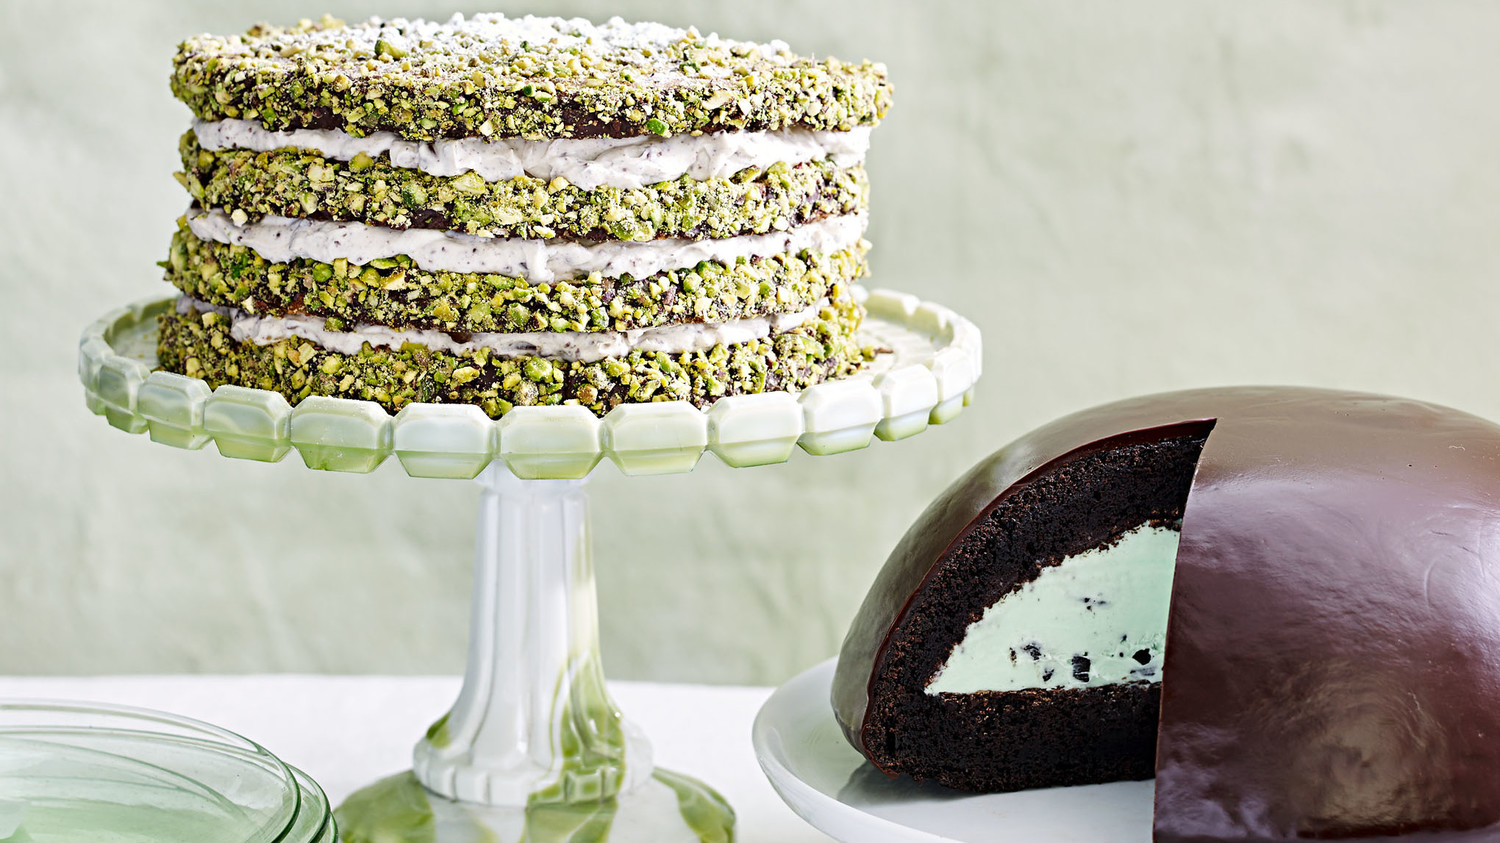 grasshopper ice cream and pistachio cannoli cakes